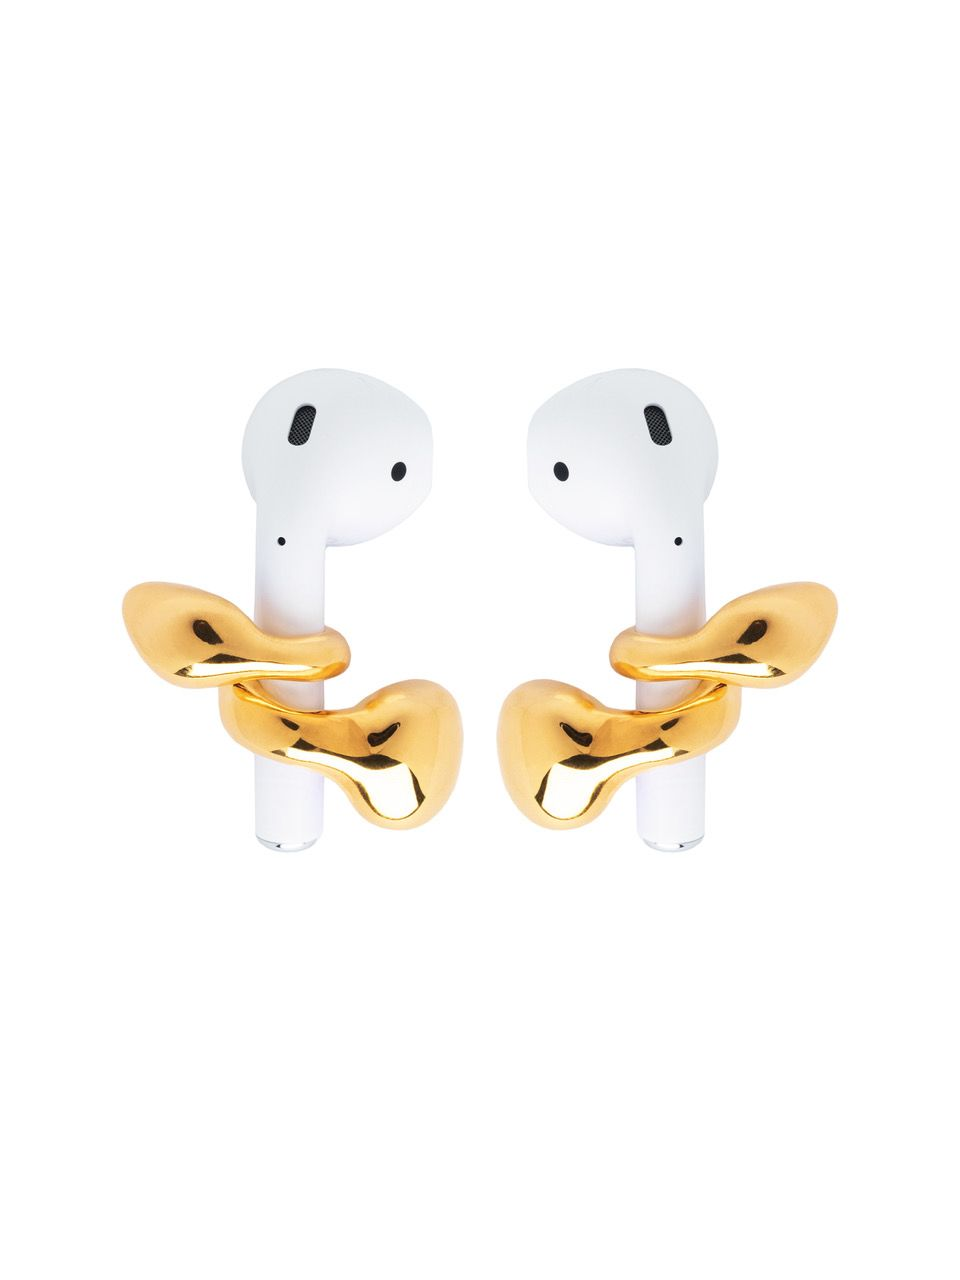 Earrings Especially Designed For AirPods Are Now A Thing––And We Want Them